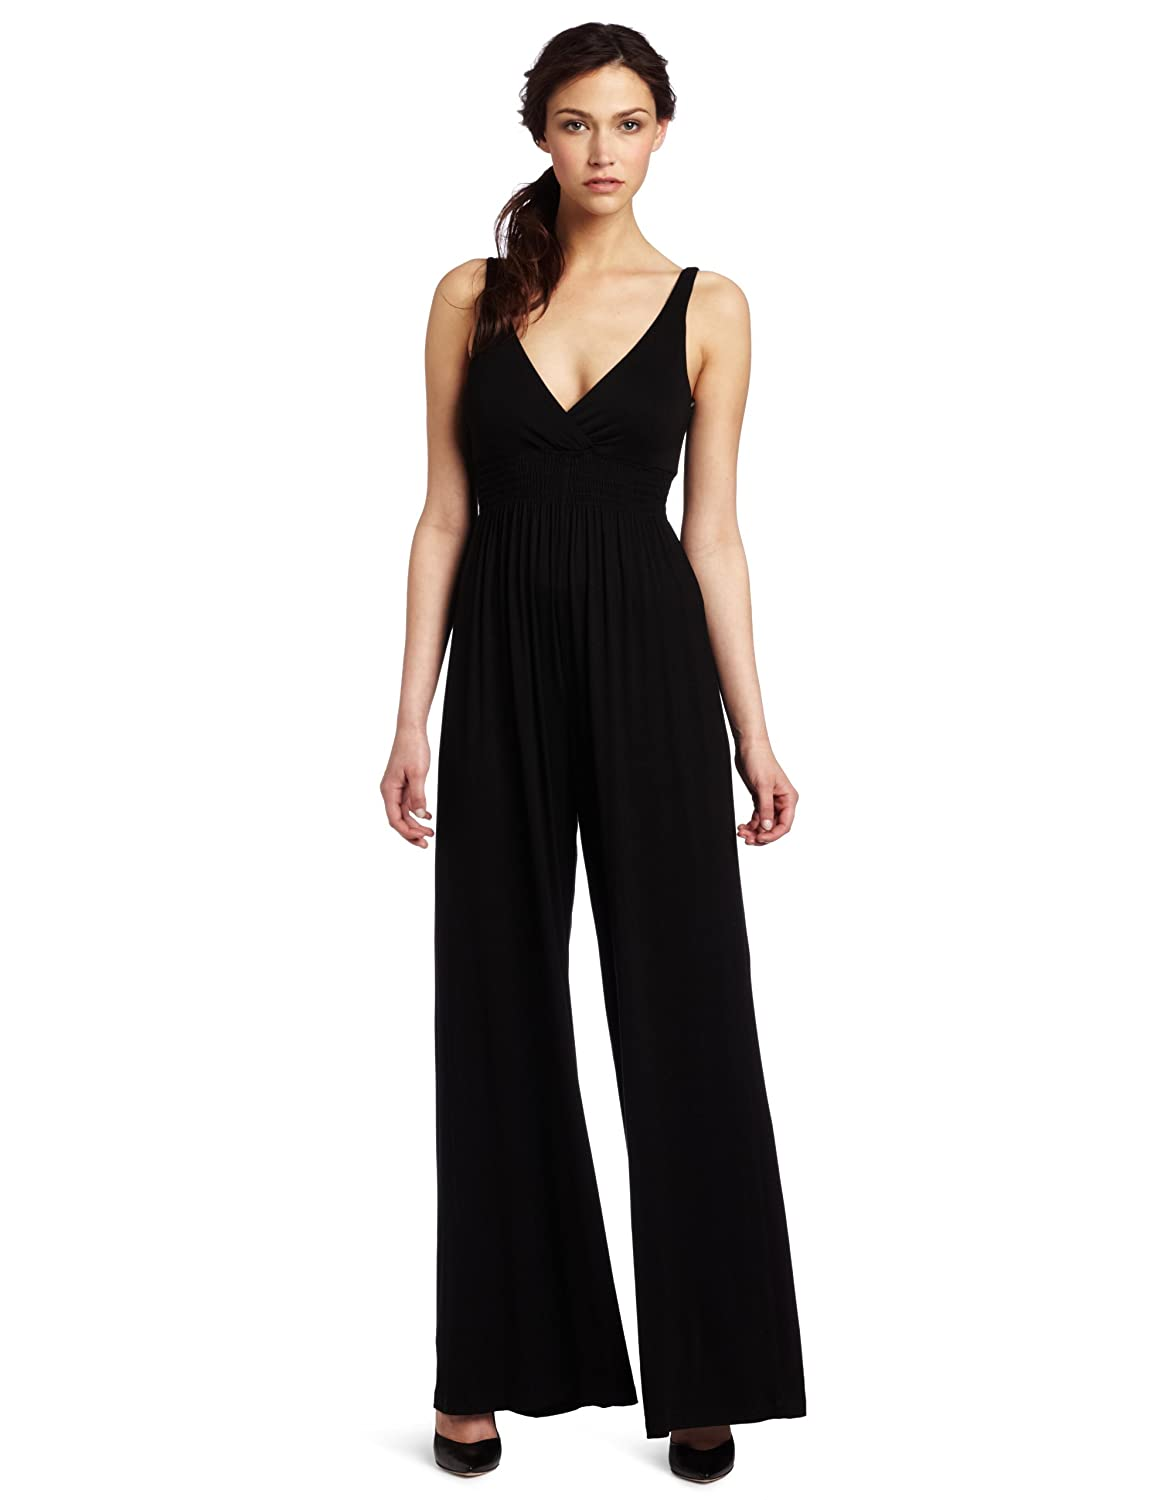 Unique Three Dots Strapless Jersey Jumpsuit For Women  Bagep